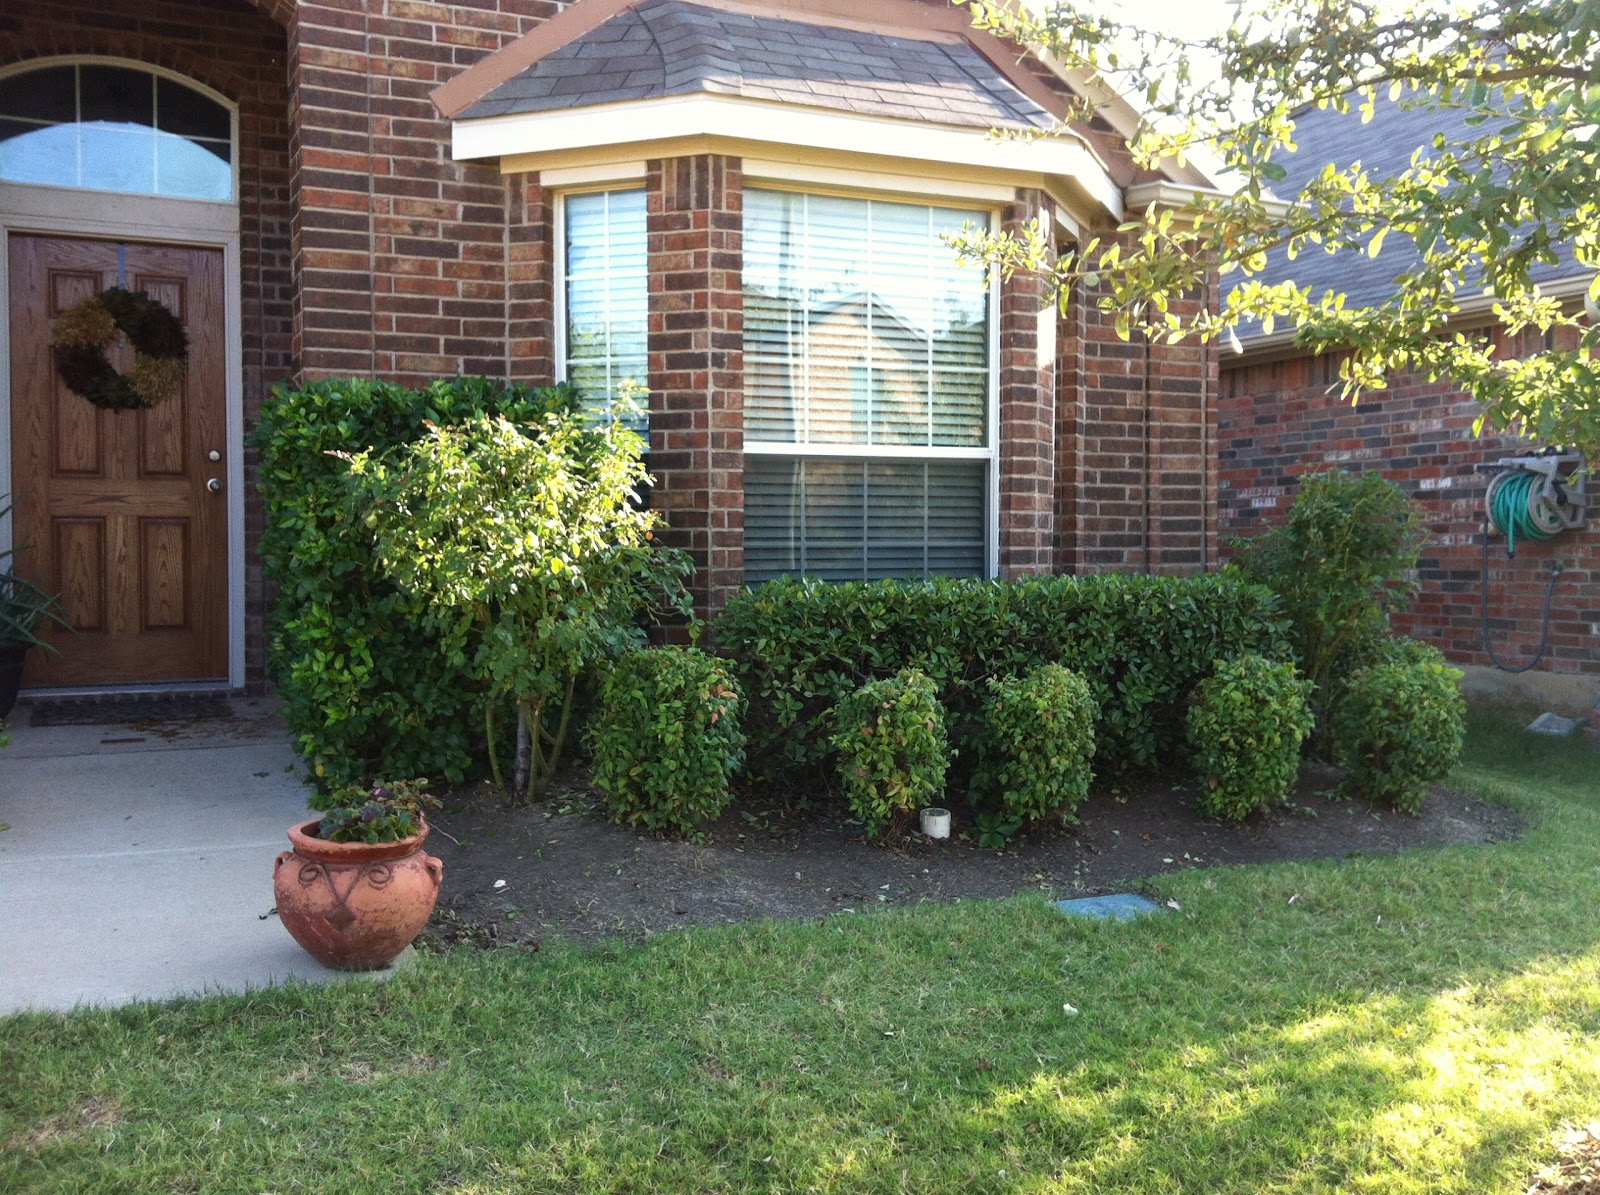 Landscaping Ideas: The Traylor Parks Blog: Front Yard Landscaping